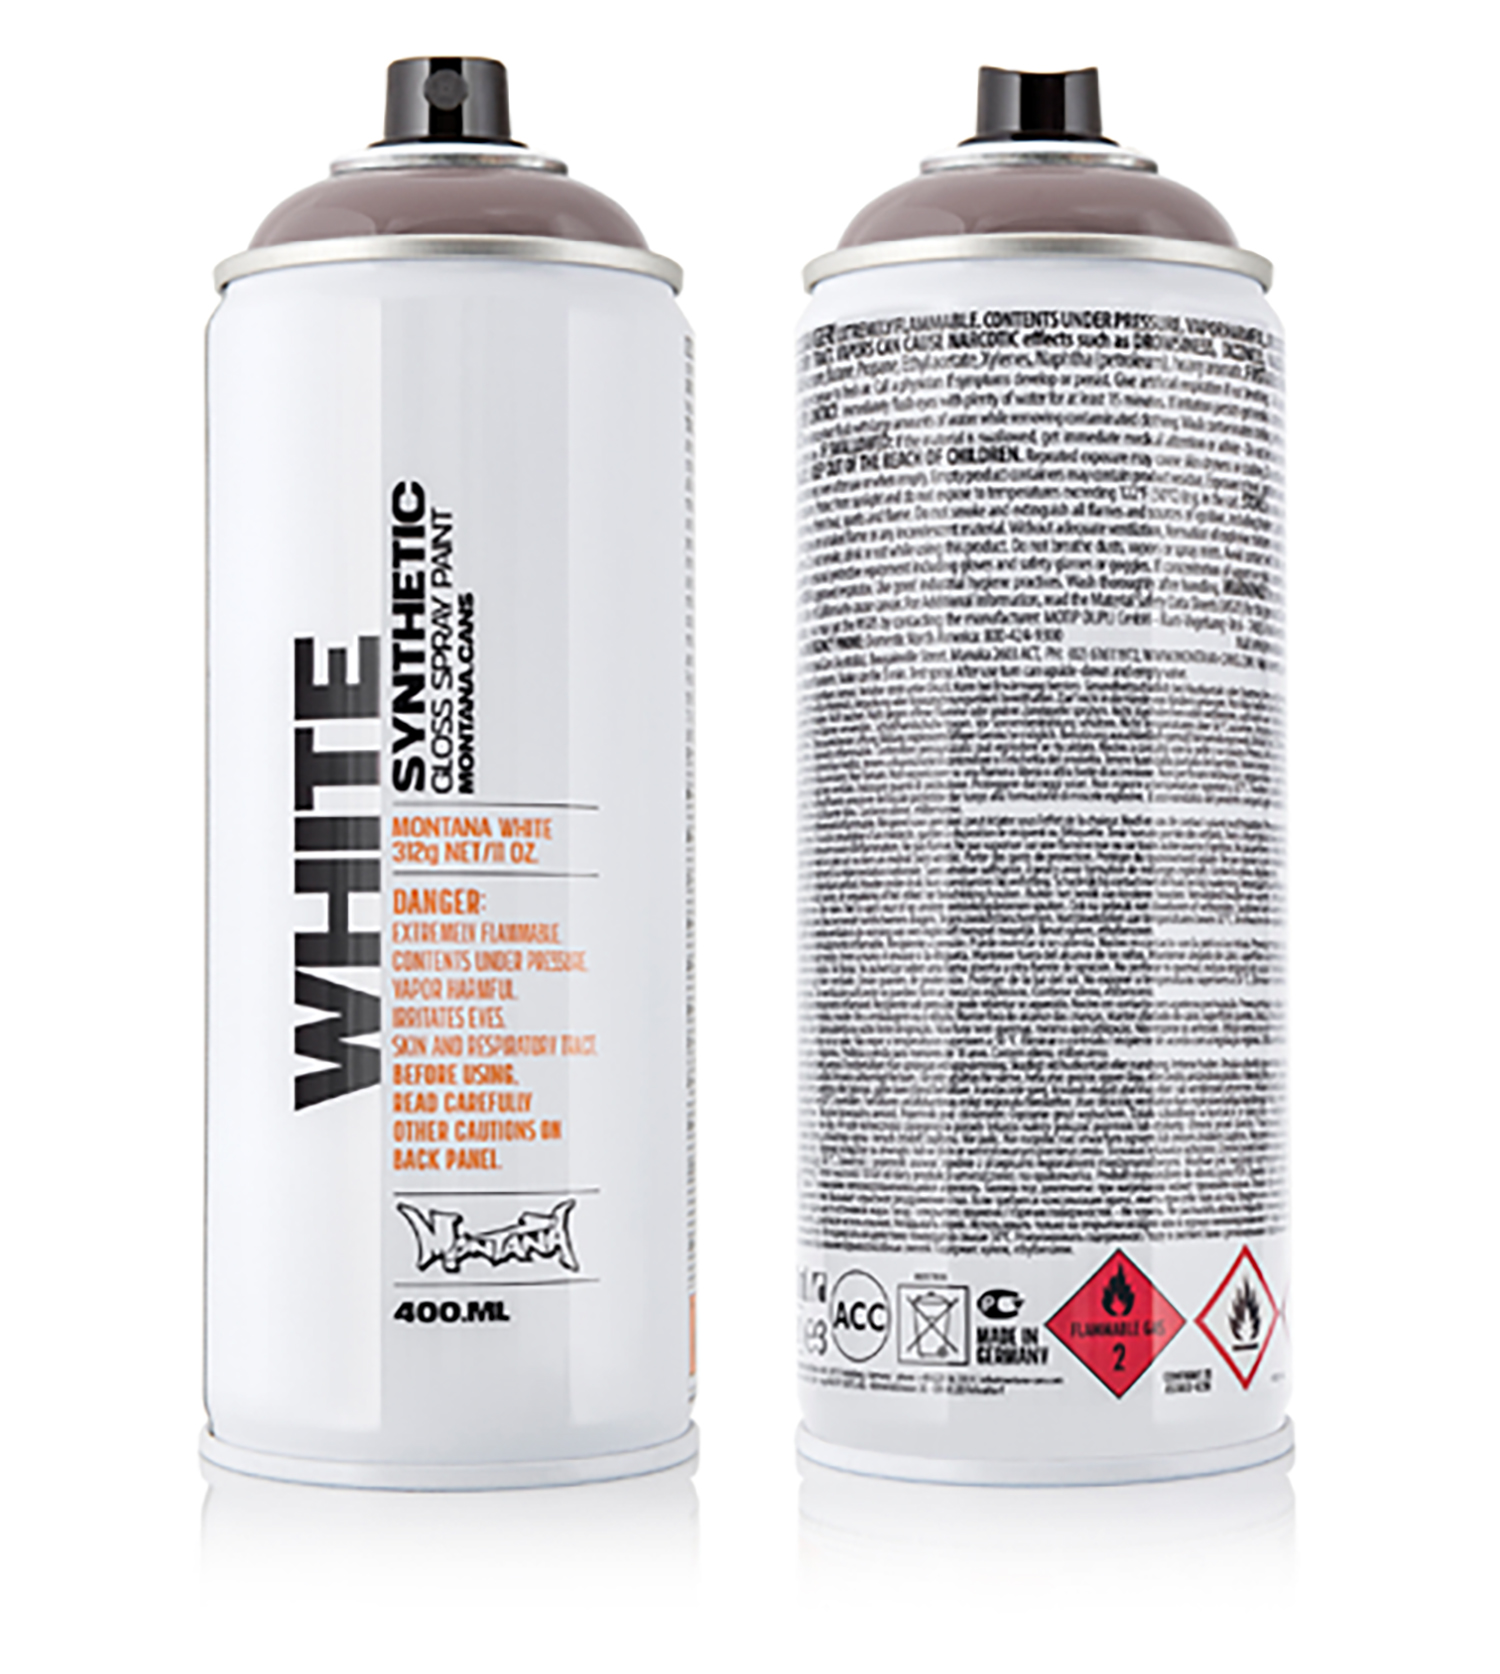 MONTANA-WHITE-SPRAY-400ML-4020